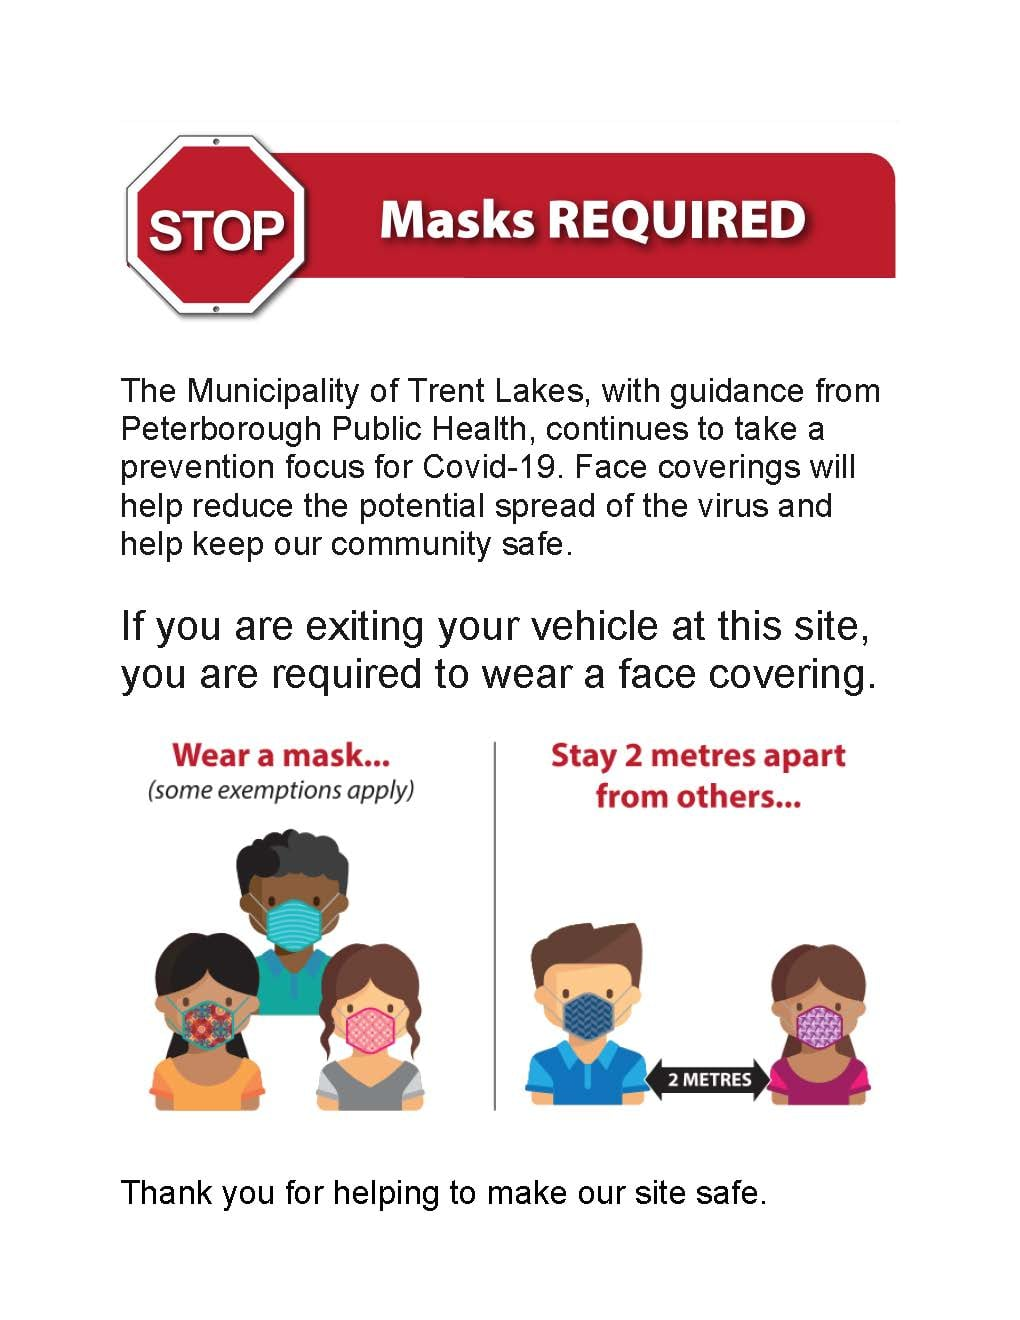 Infographic regarding masks being required to be worn at all waste sites